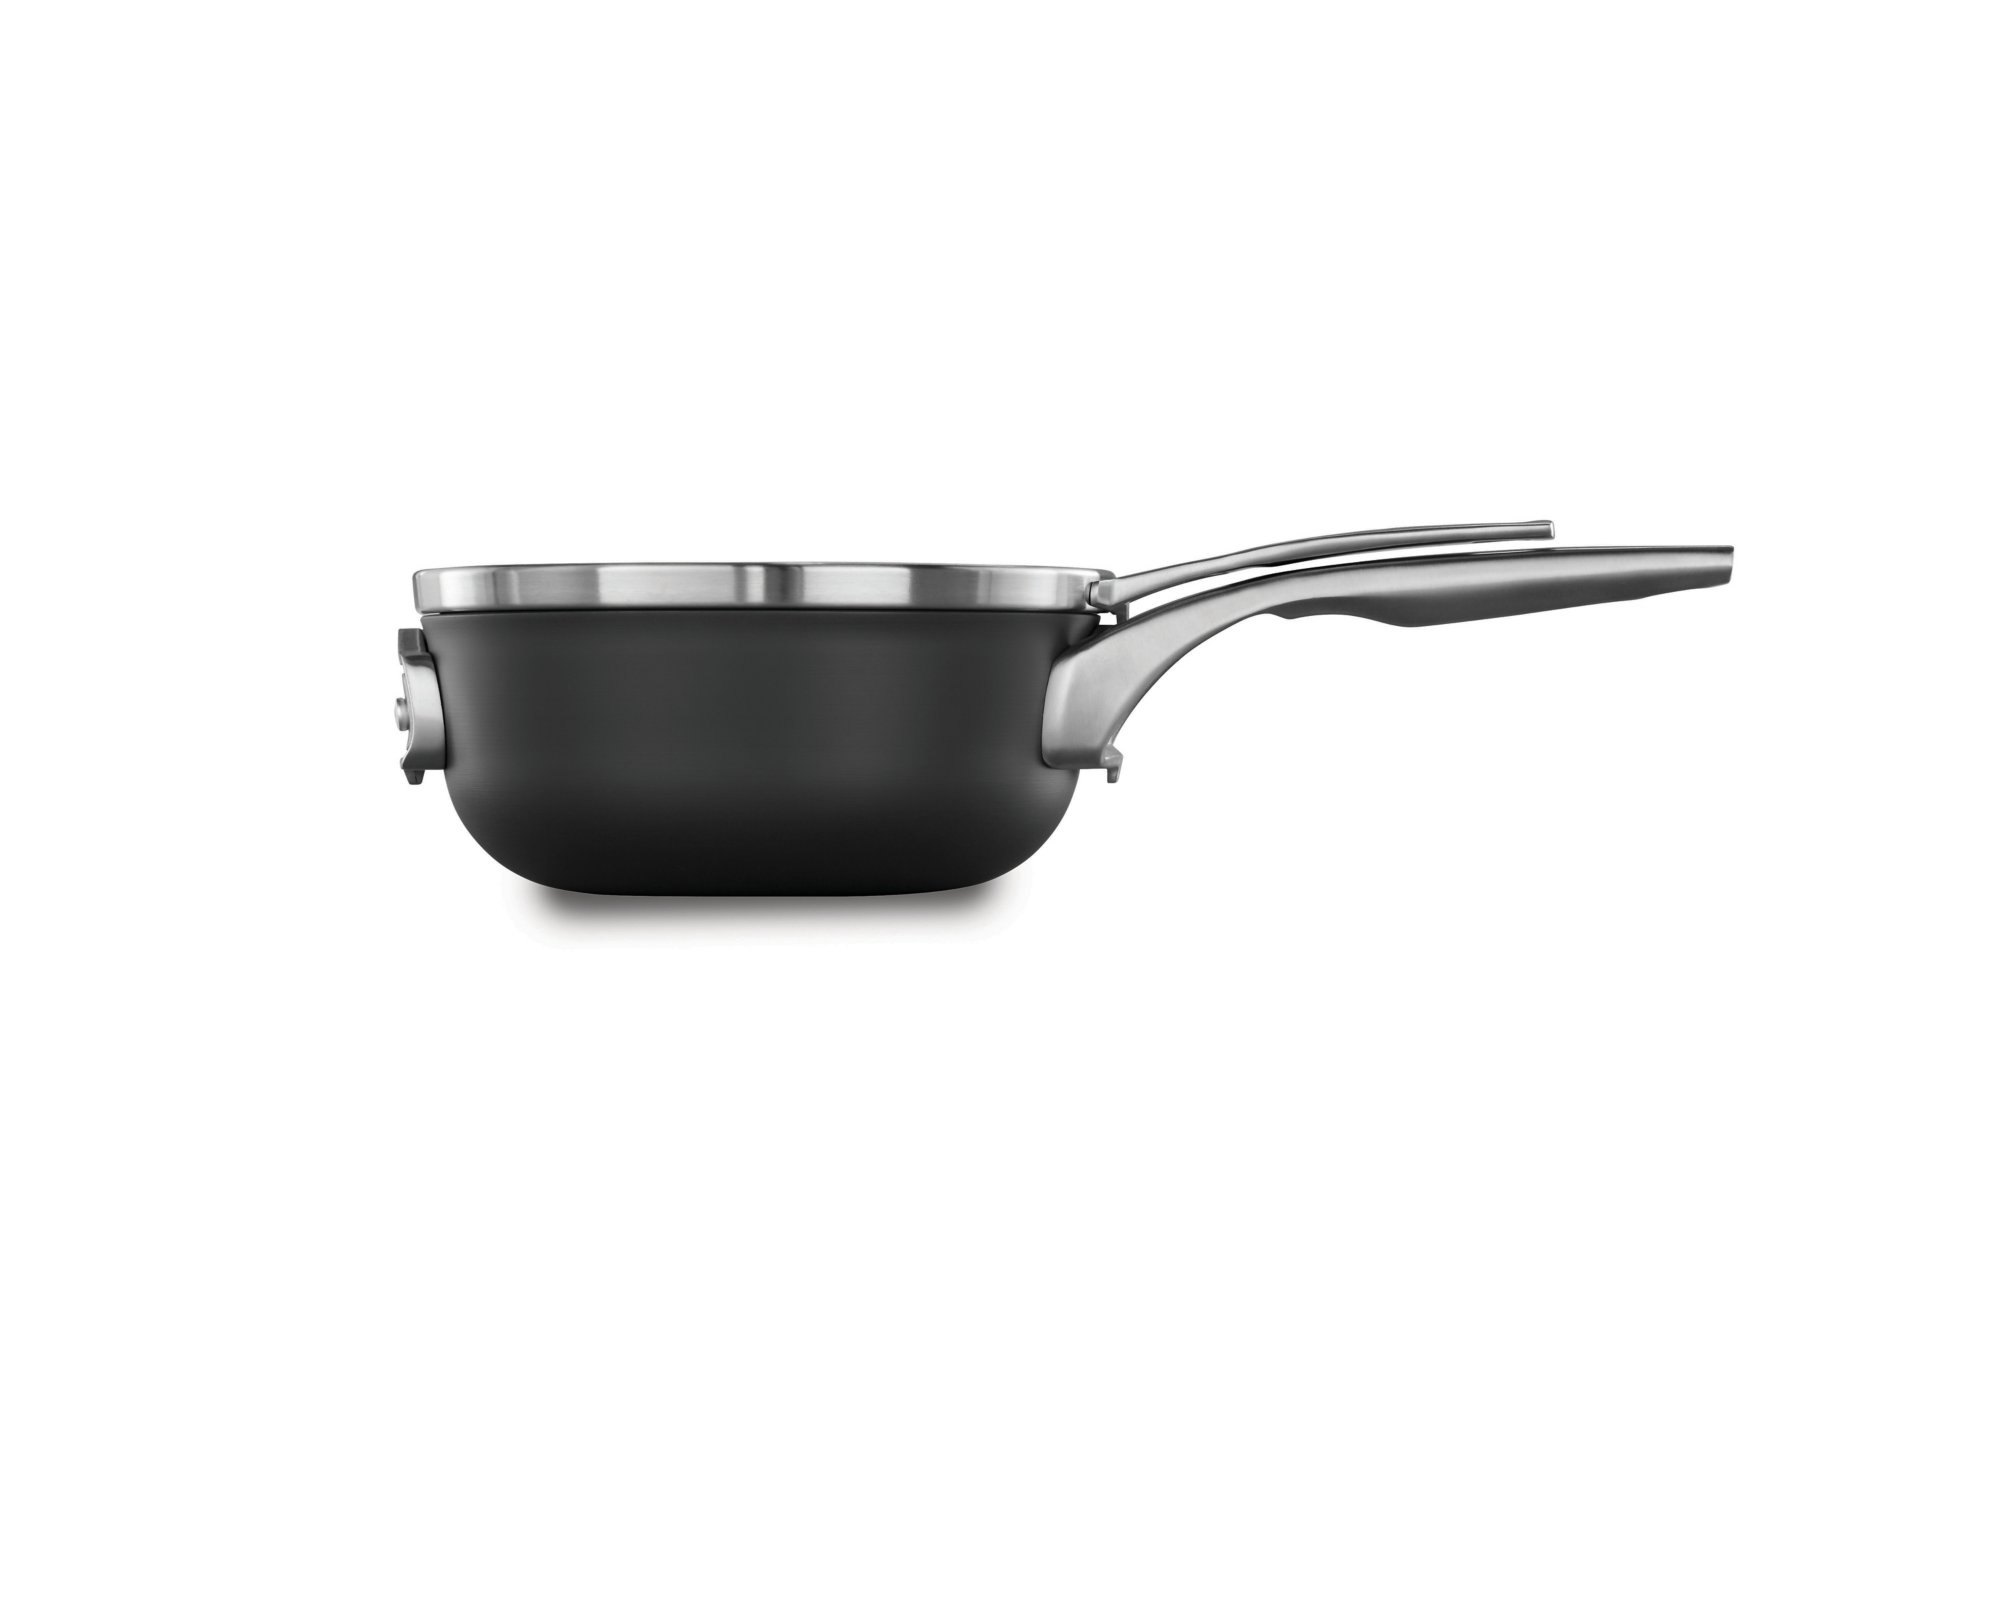 Calphalon Premier™ Space Saving Hard Anodized Nonstick 2.5 qt. Chef's Pan with Cover